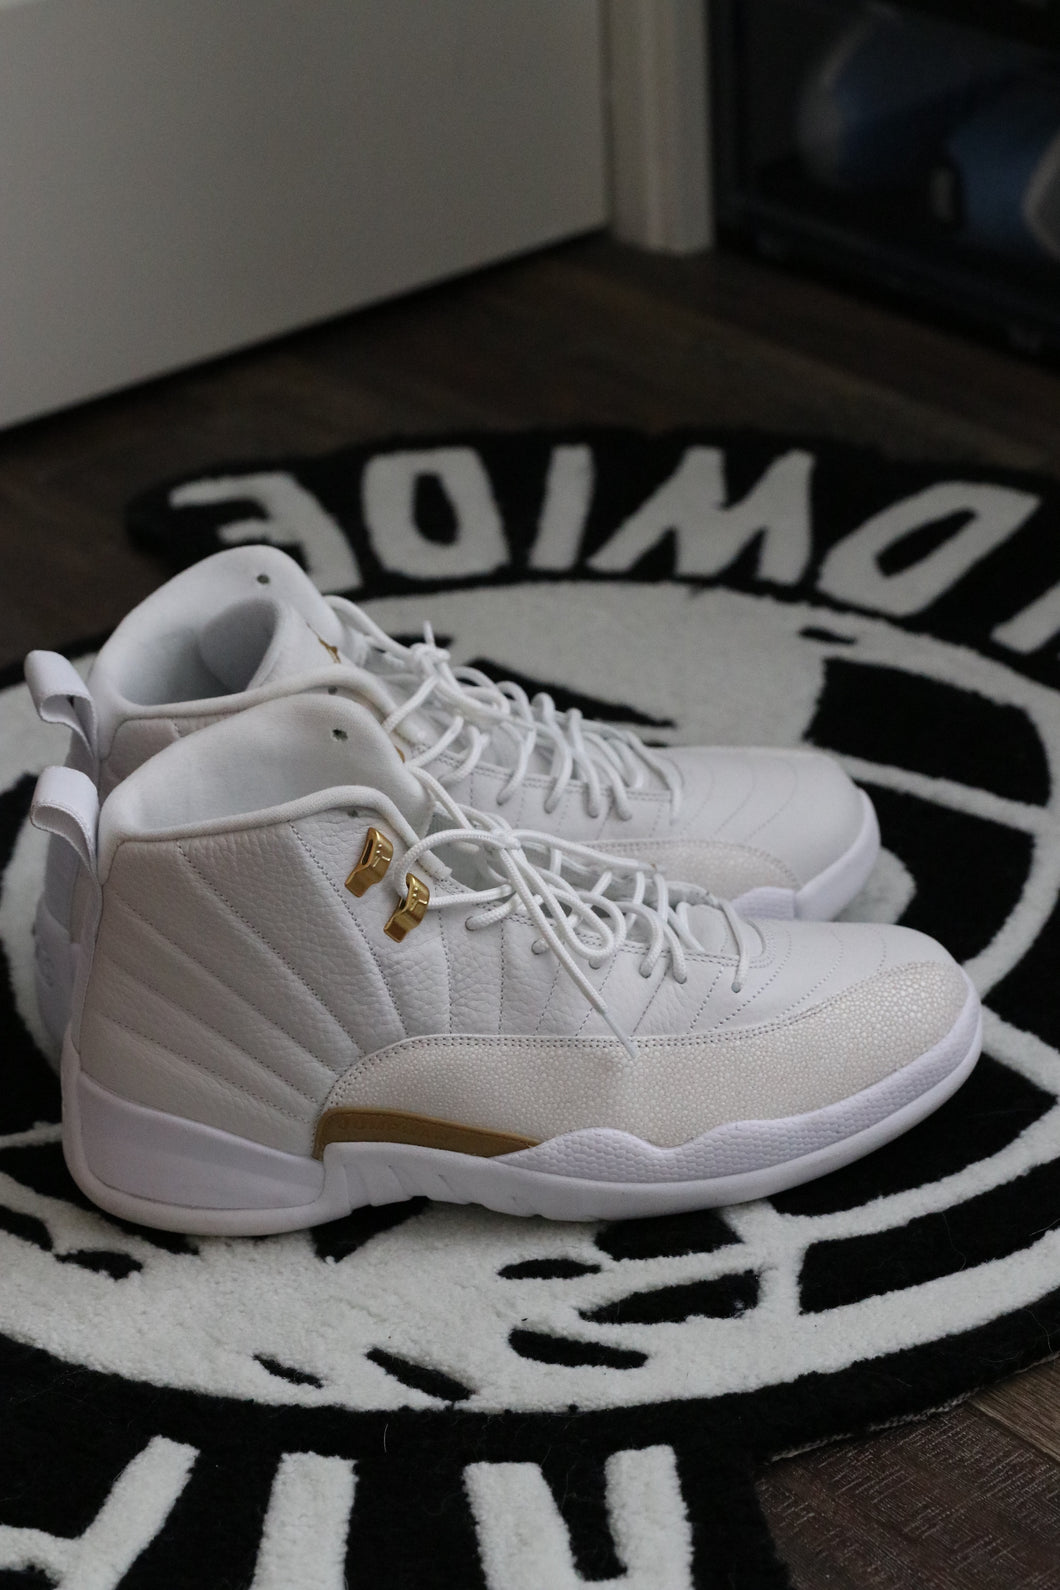 Jordan 12 Retro OVO White | Worn | Size 12